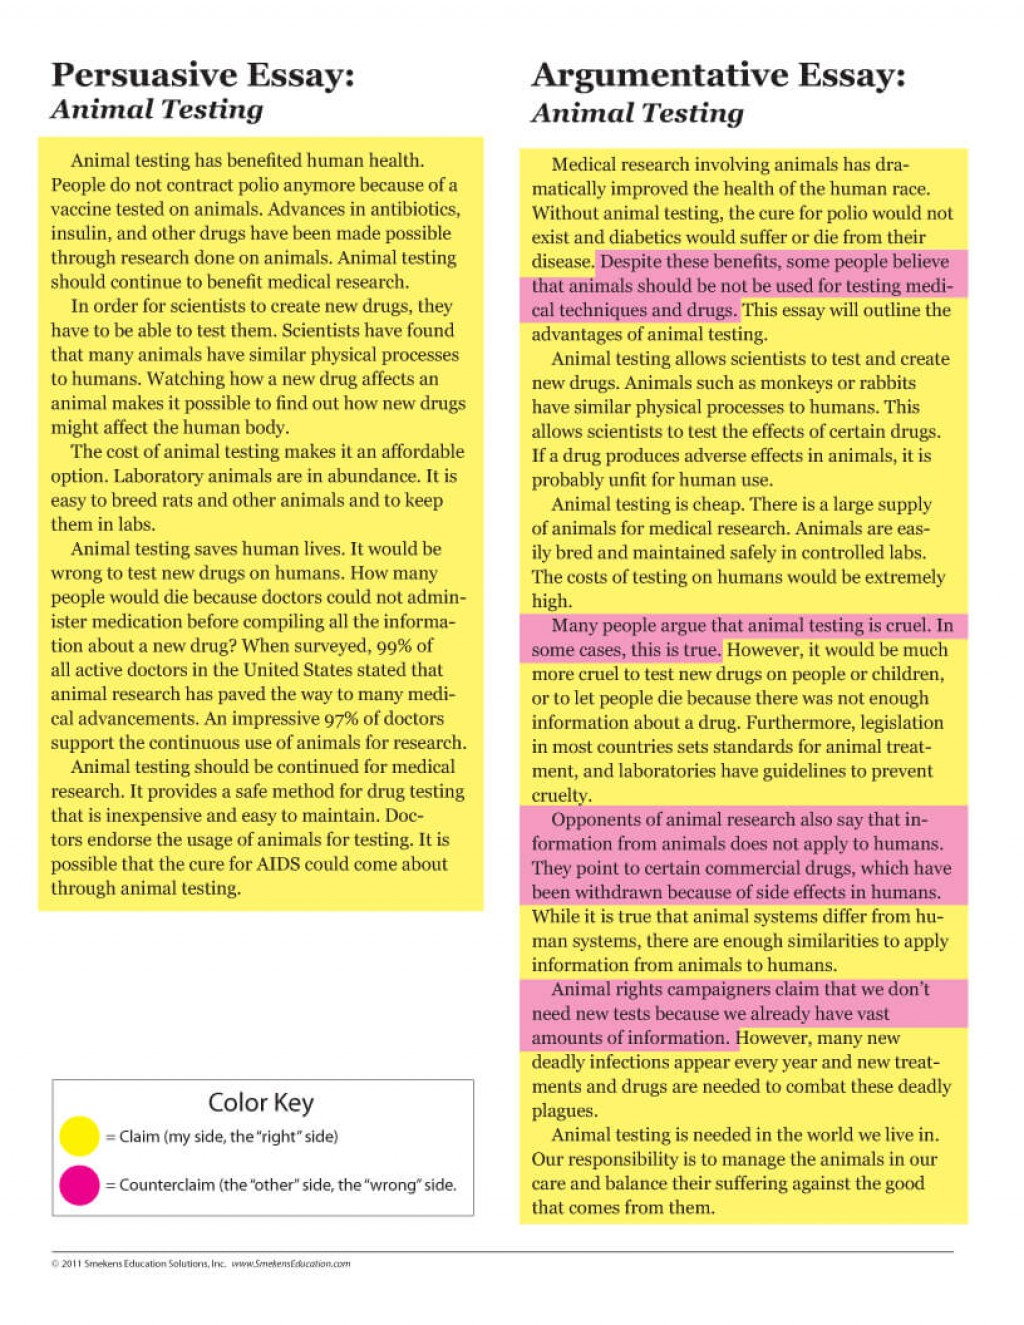 004 Arg V Pers Animal Testing Color Key O Essay Example Persuasive Vs Awful Argumentative Are And Essays The Same Differentiate Large